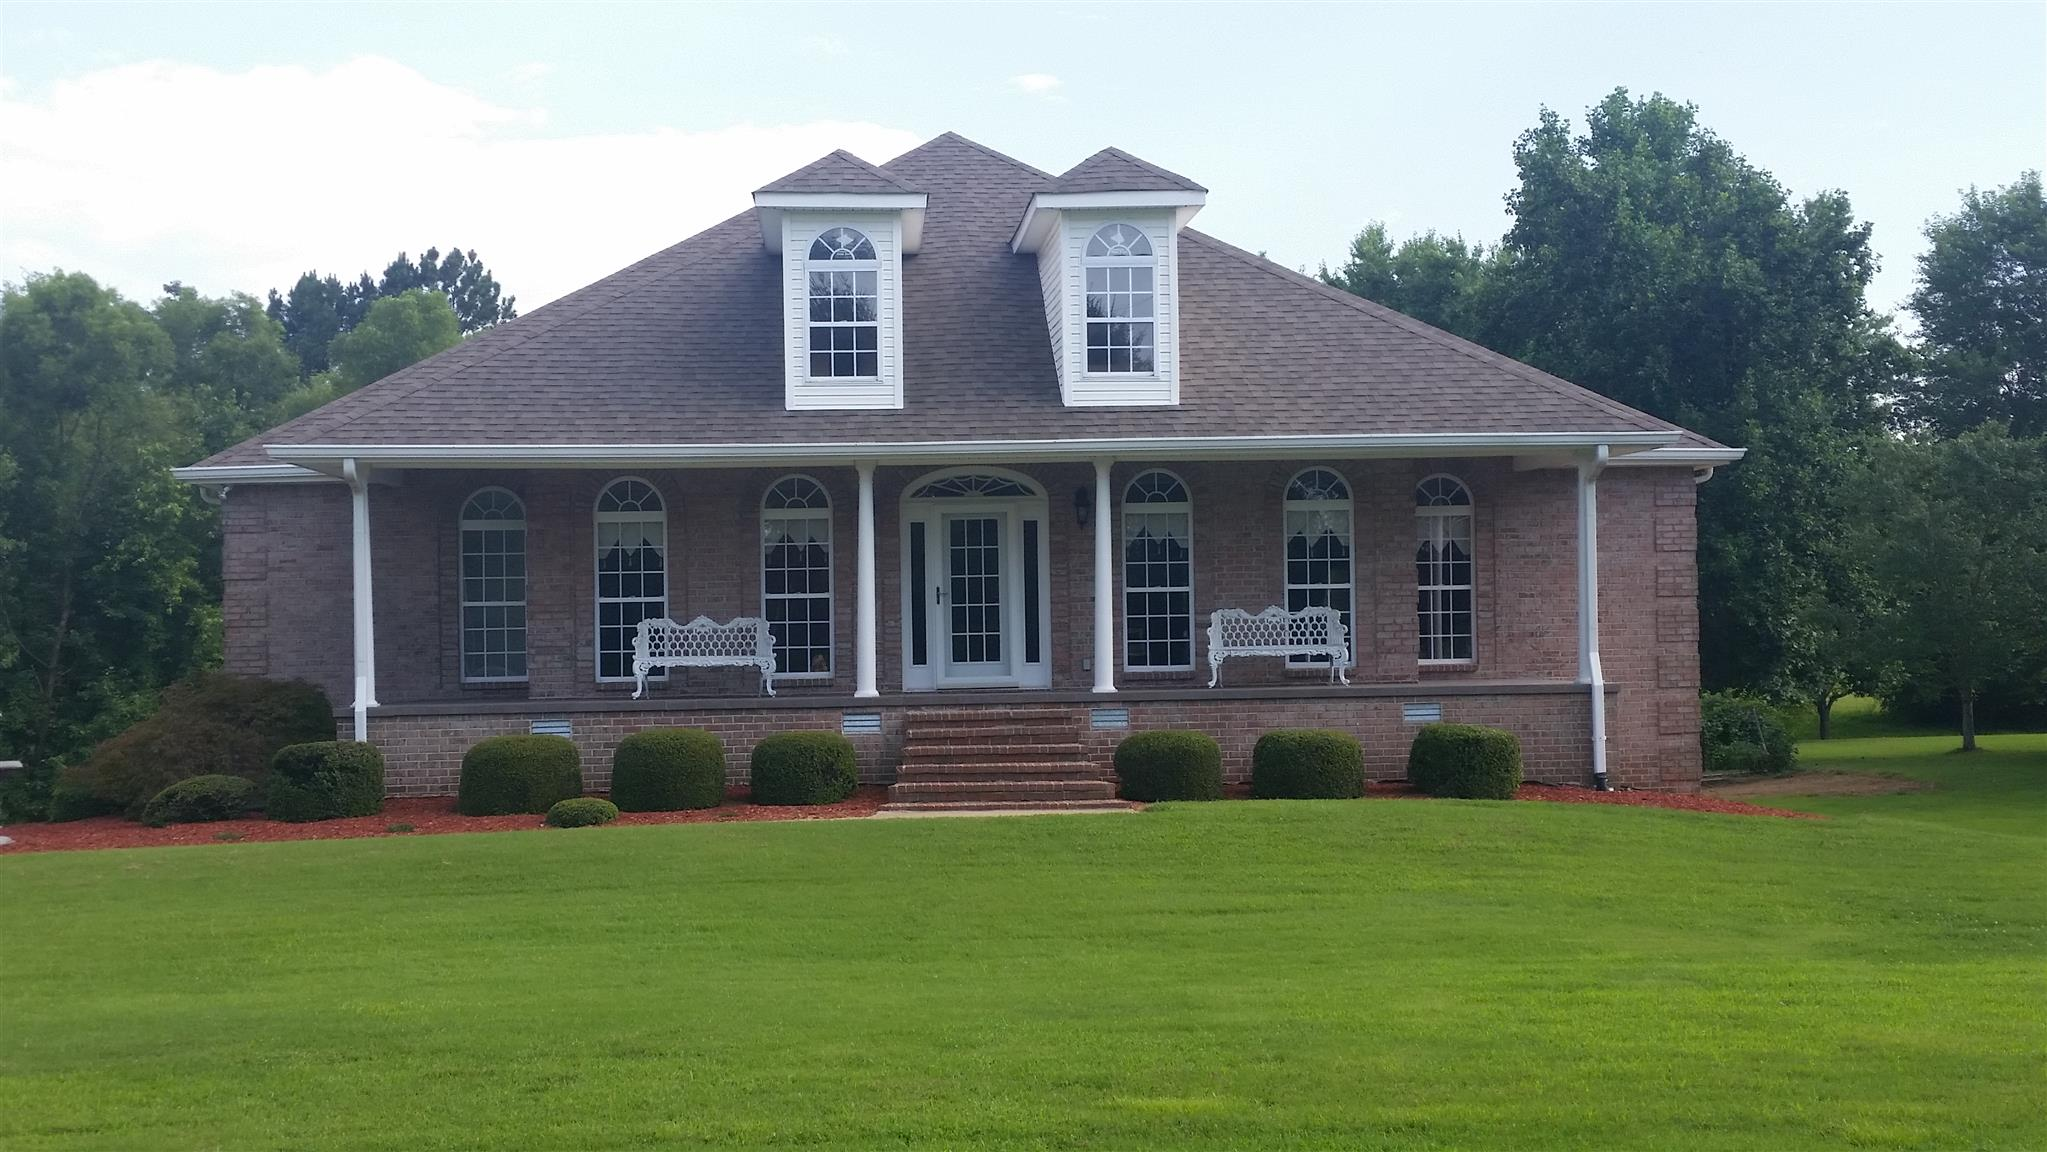 Tennessee waterfront property in nashville j percy priest for Custom home builders lebanon tn